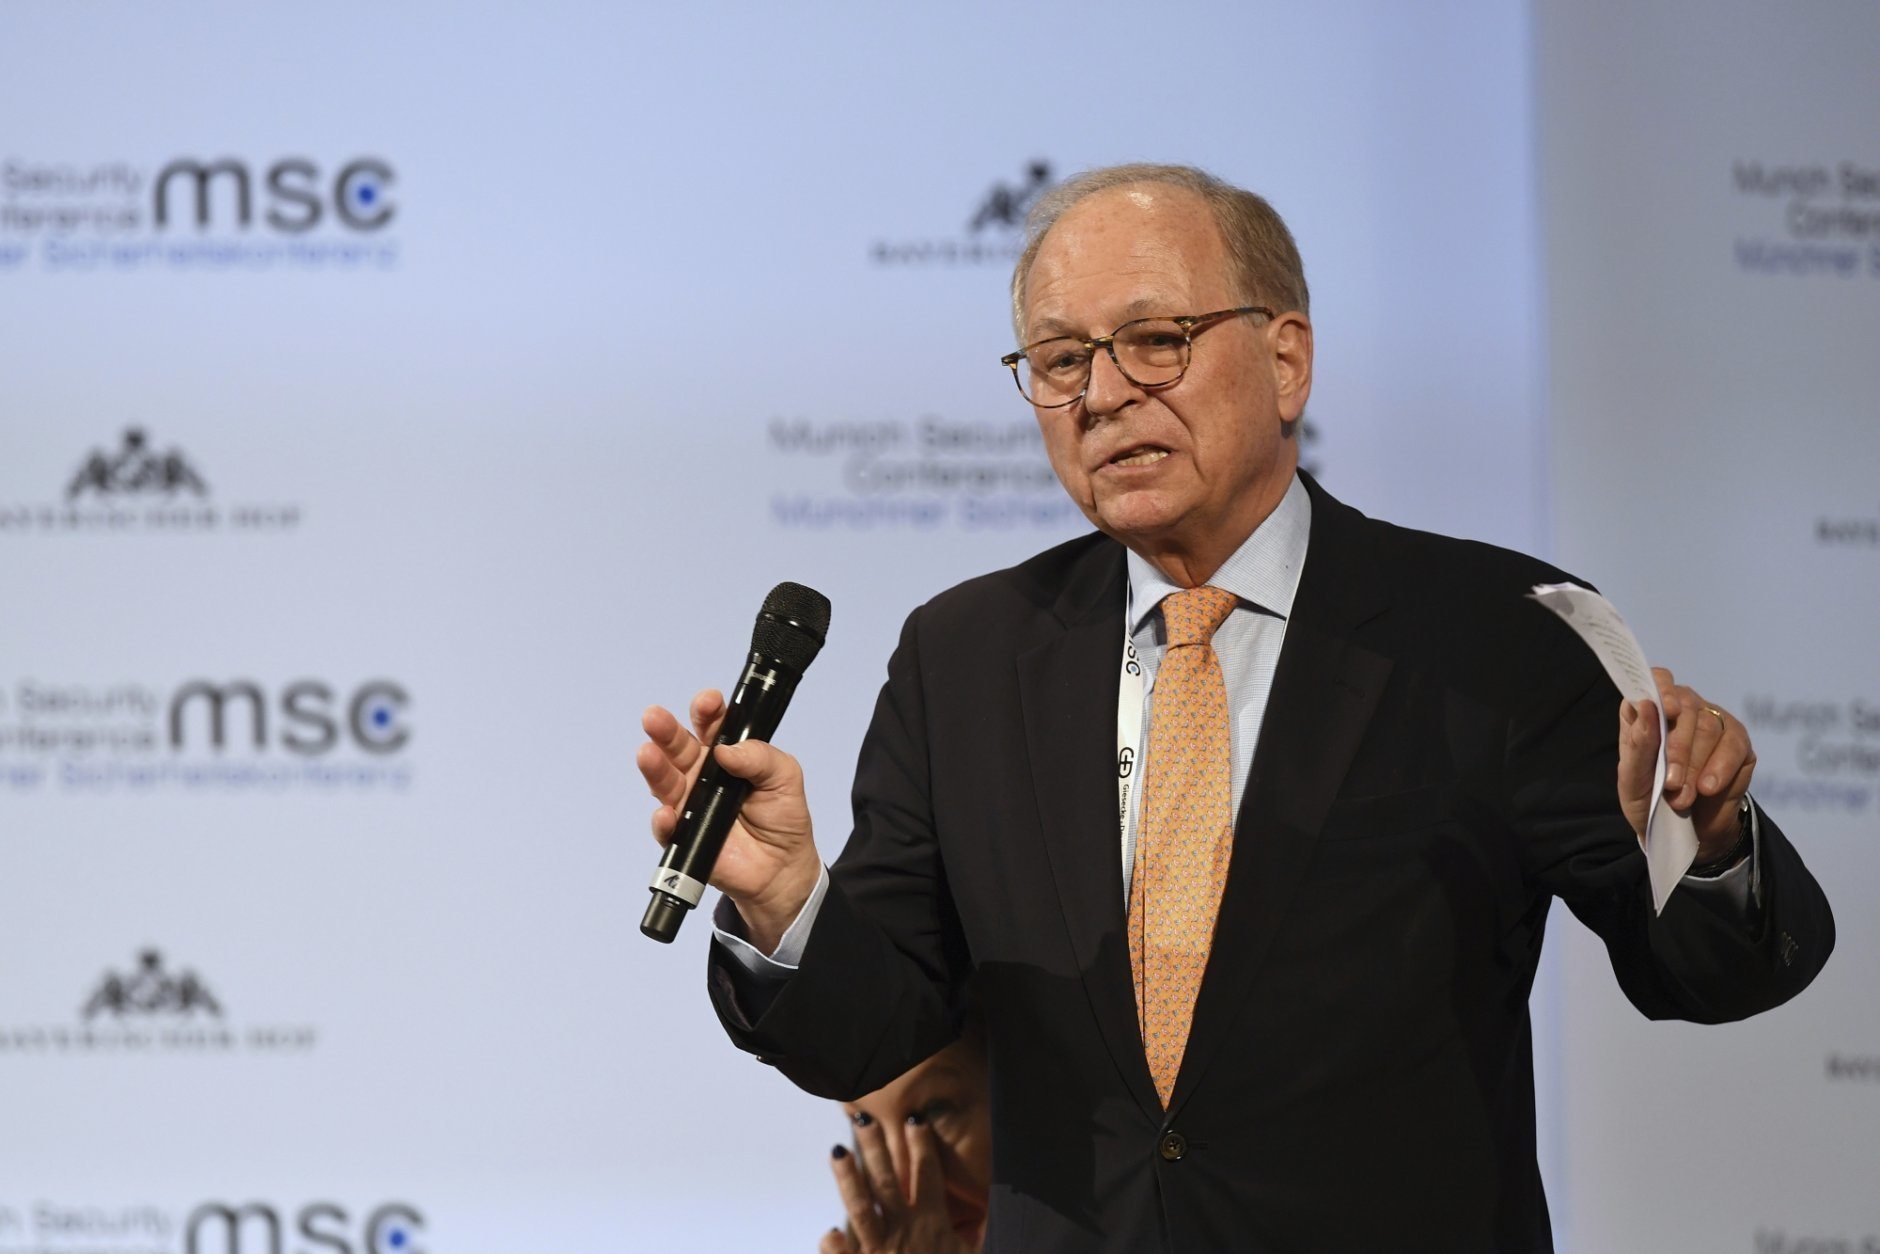 Wolfgang Ischinger, chairman of the Munich Security Conference during his closing speech at the Munich Security Conference in Munich, Germany, Sunday, Feb. 17, 2019. (AP Photo/Kerstin Joensson)